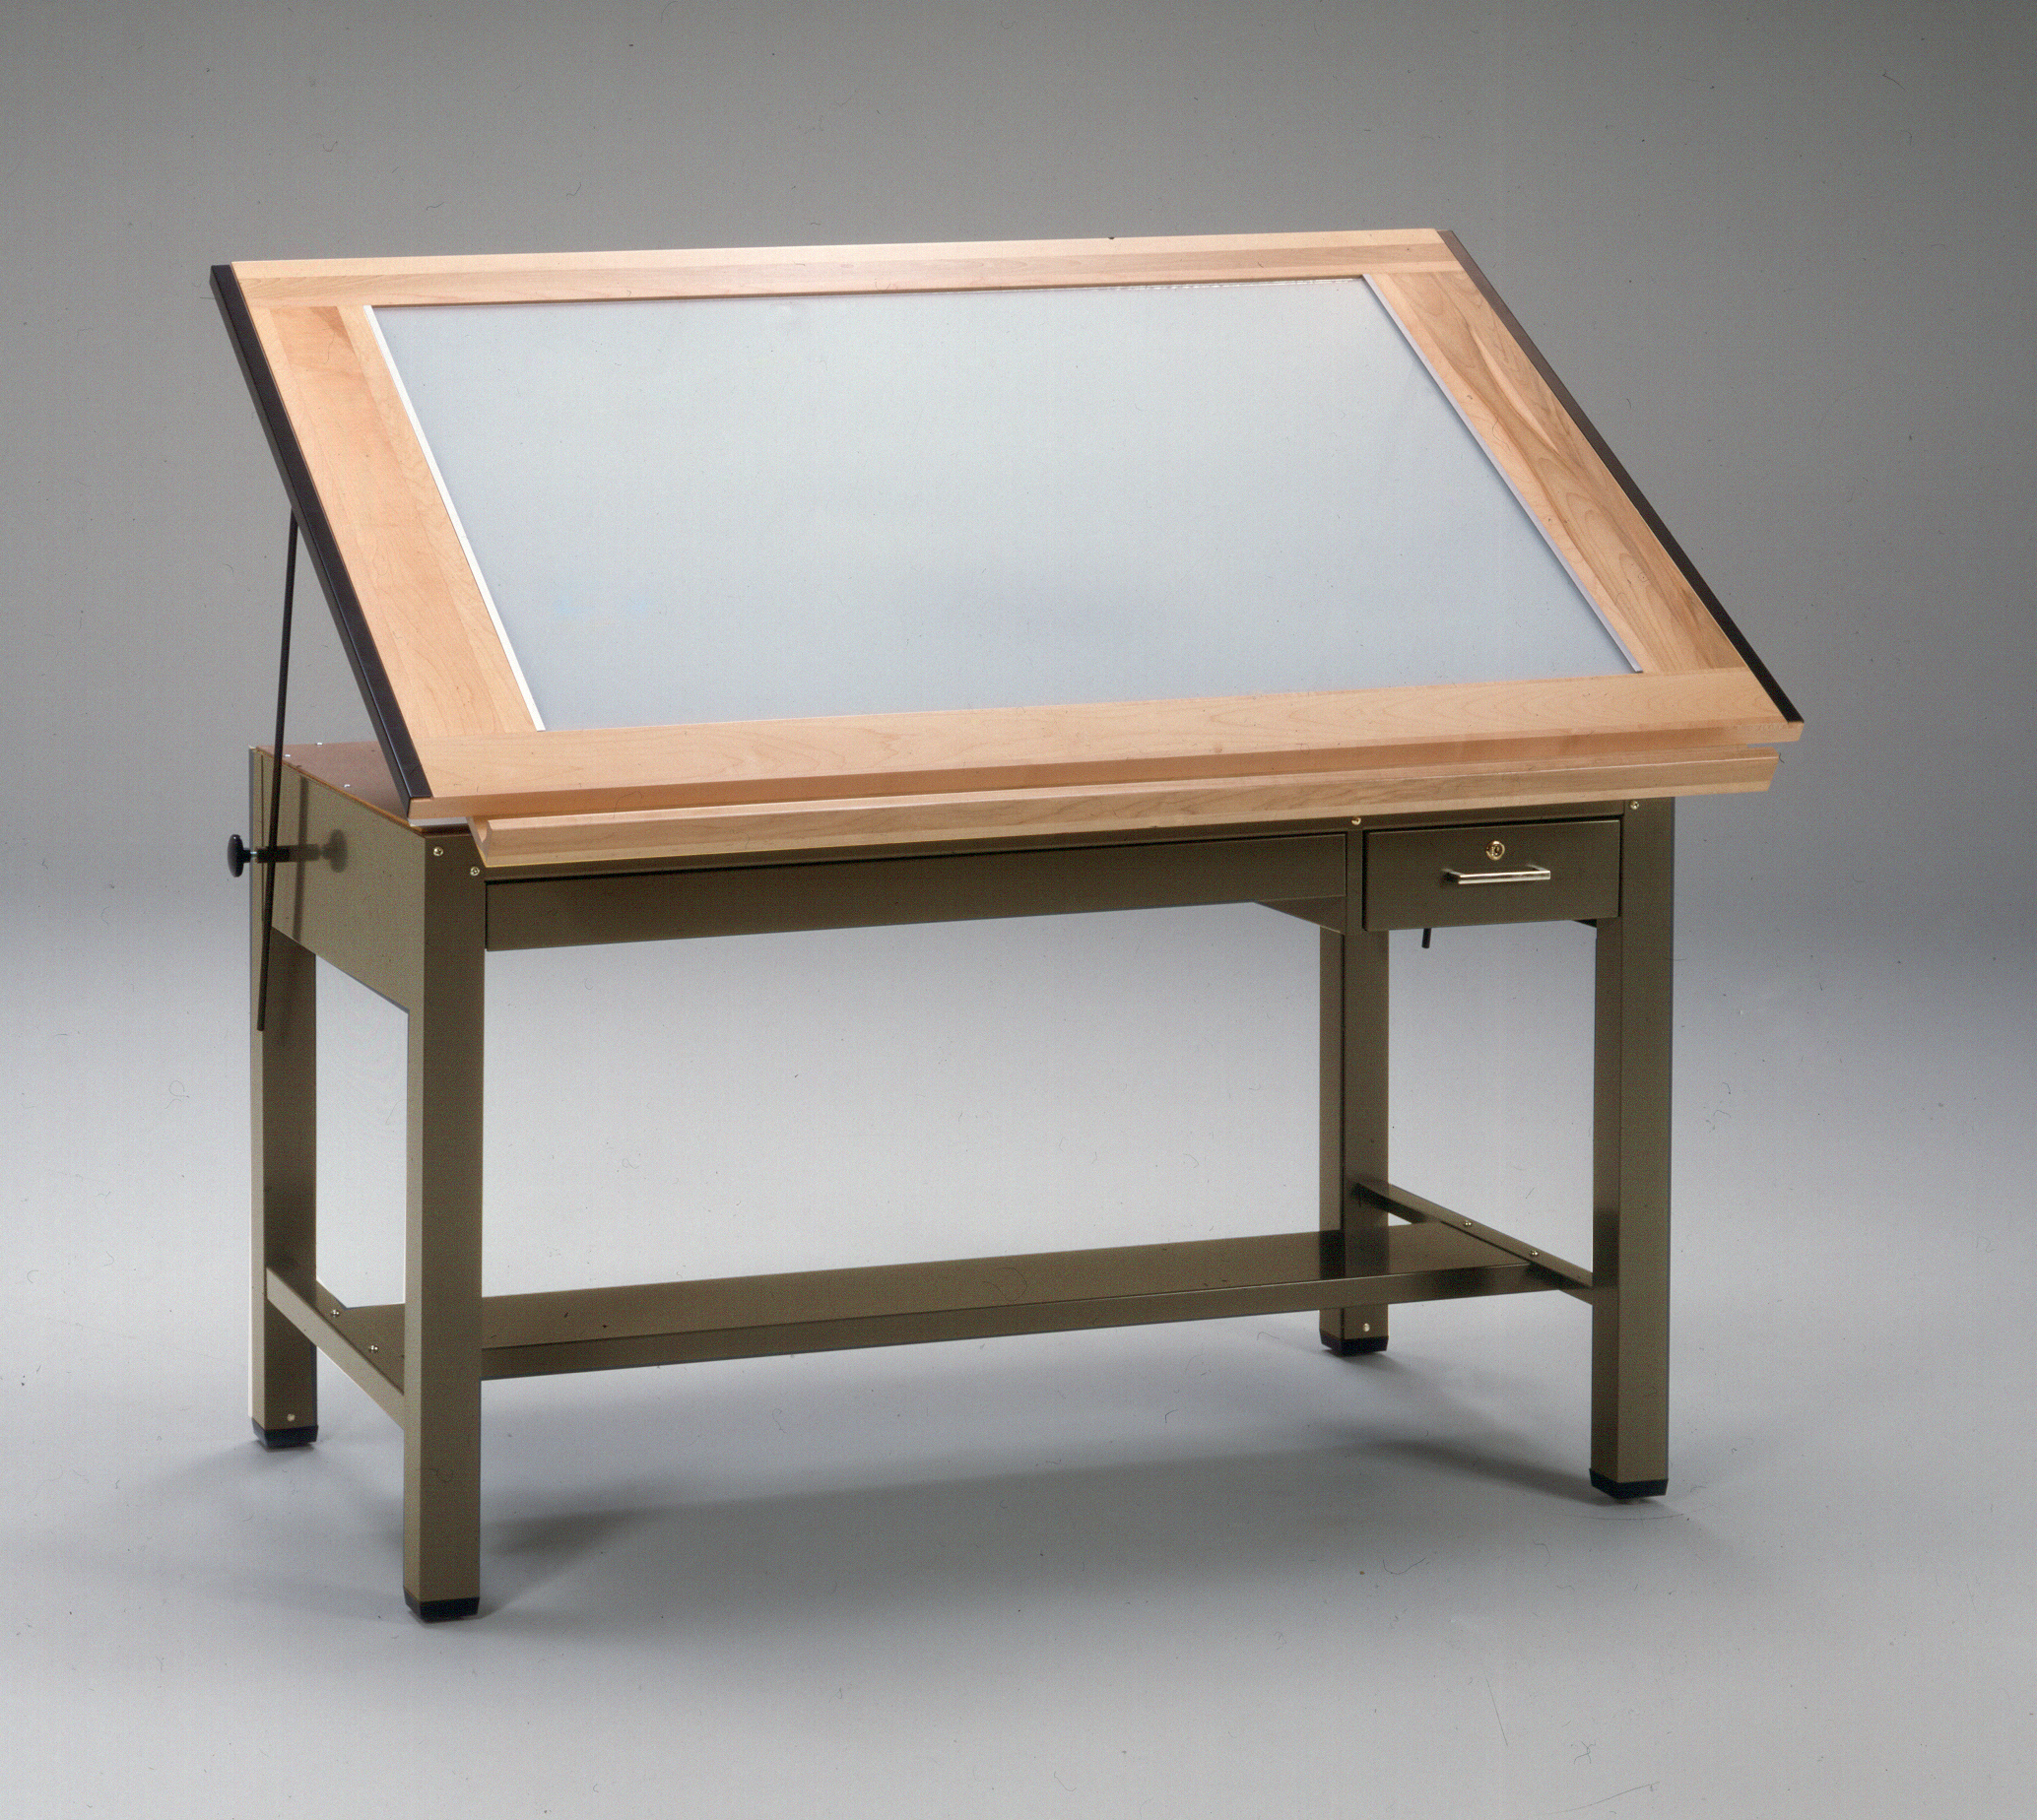 Image Gallery Light Table